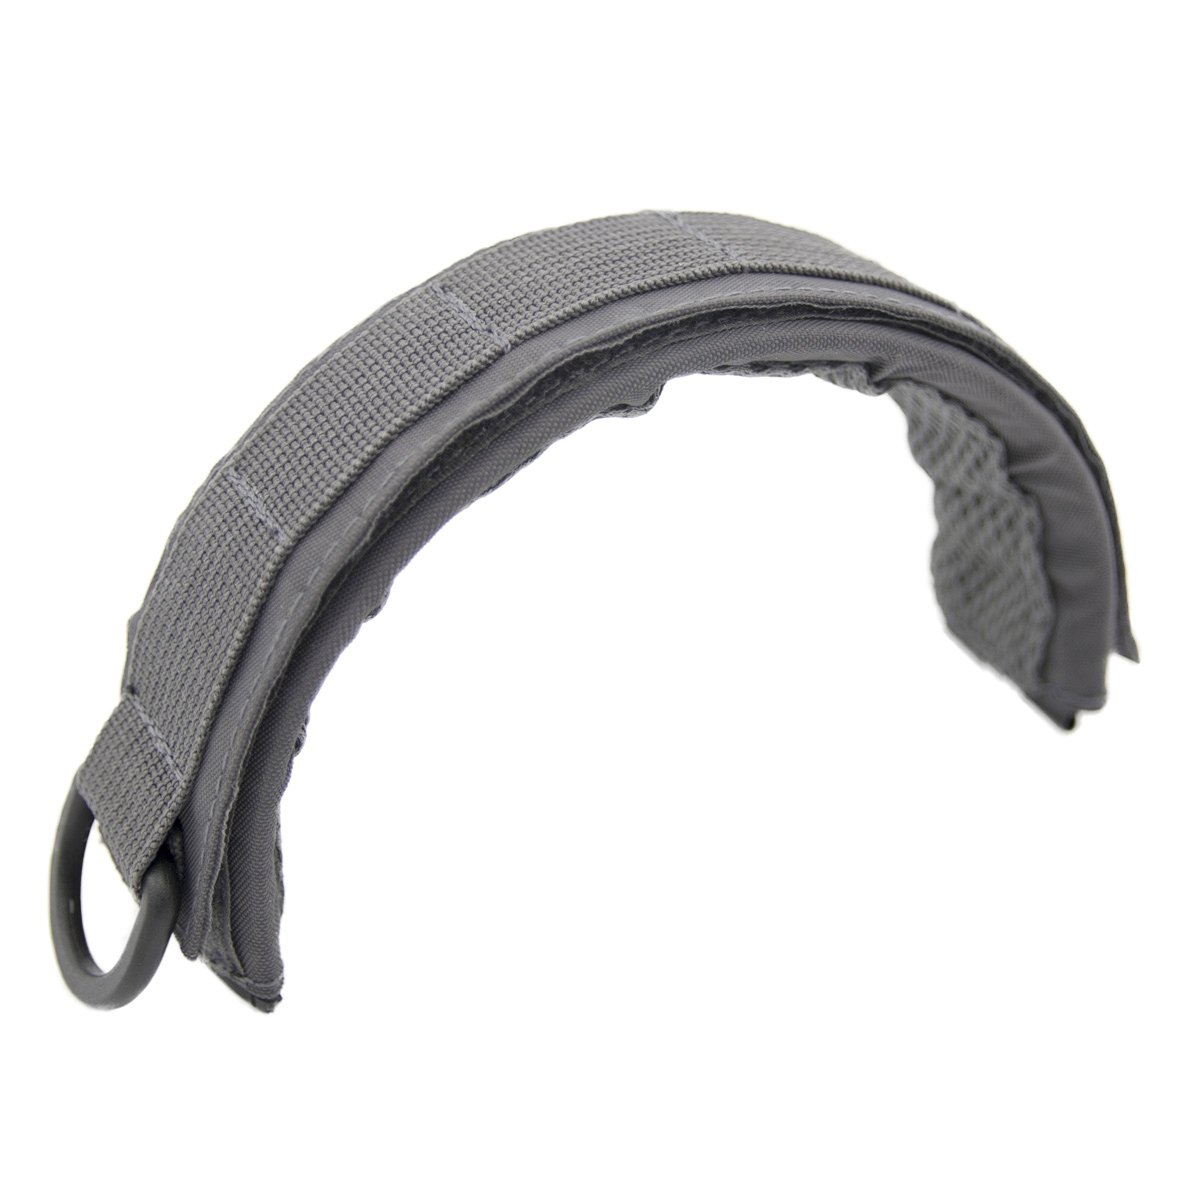 OPSMEN Headband Advanced Modular Headset Cover Fit For All General Tactical Earmuffs Accessories Upgrade Bags Case Gray by OPSMEN